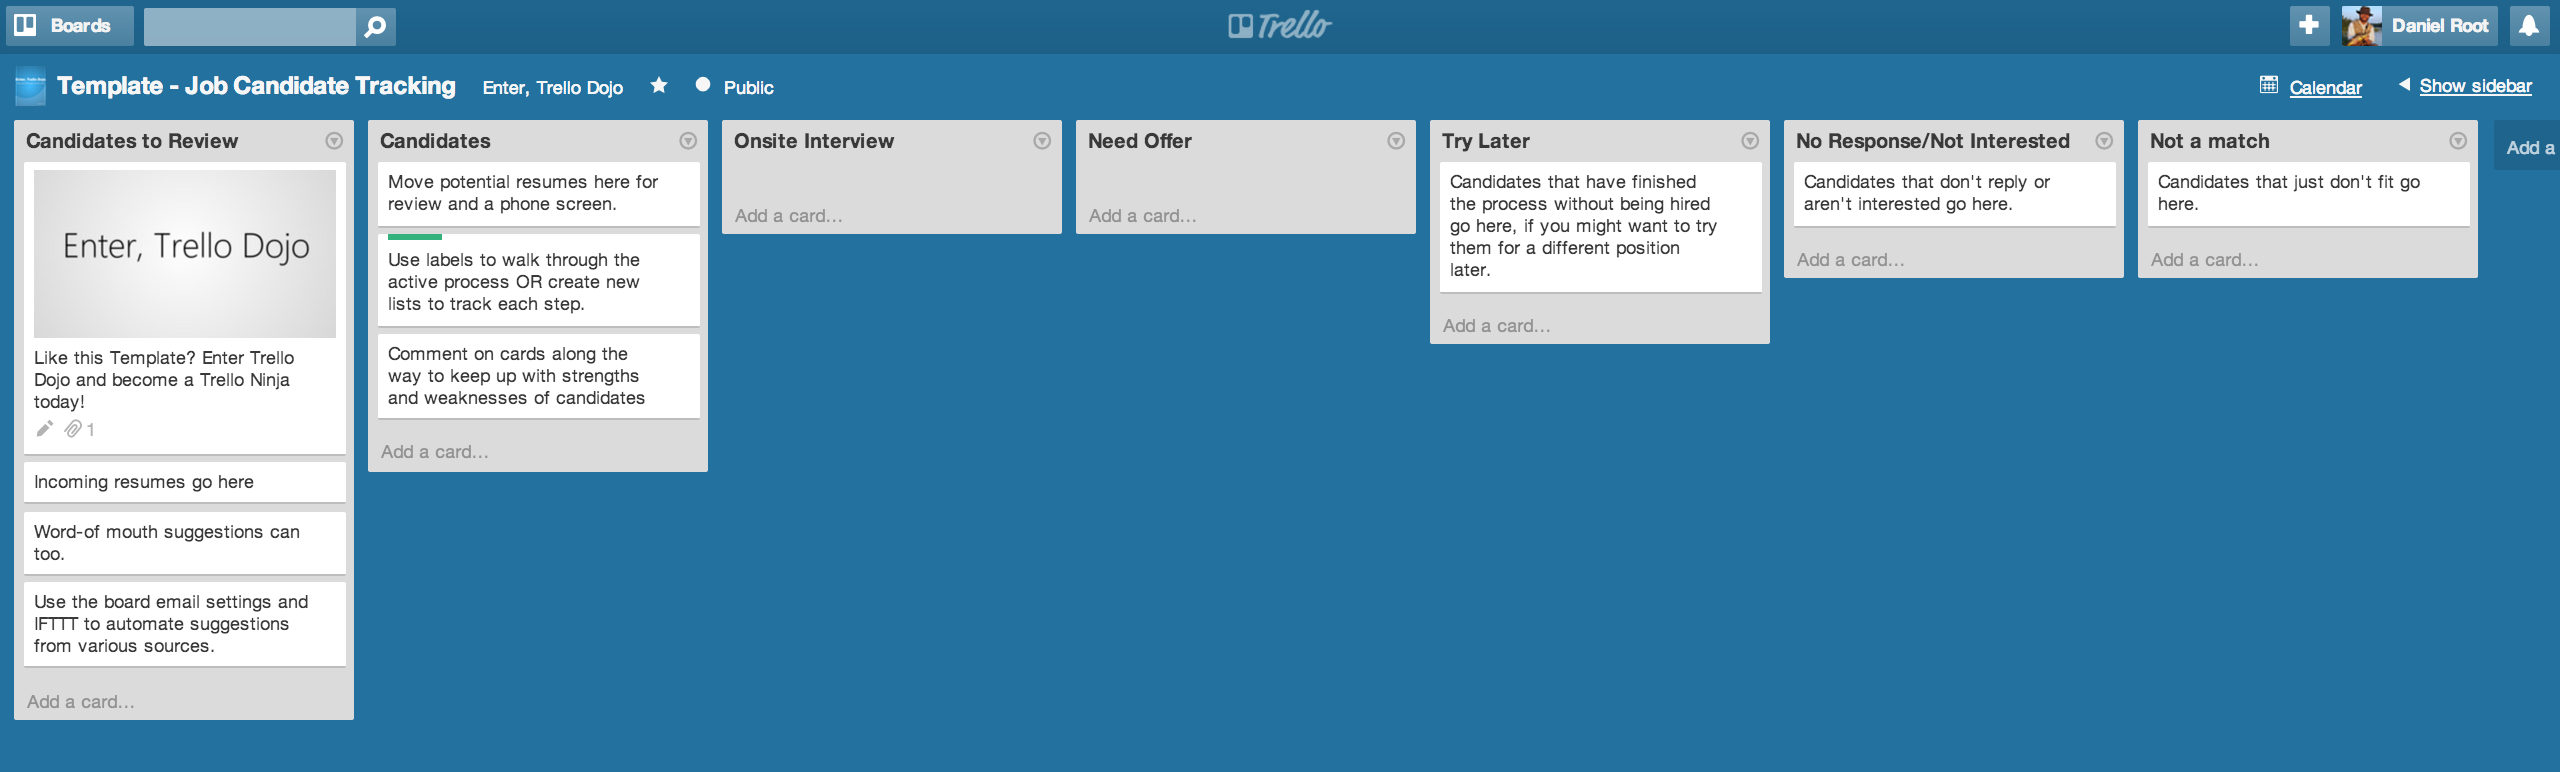 Daniel Root: Use Trello to Hire The Perfect Employee the PayPal Way